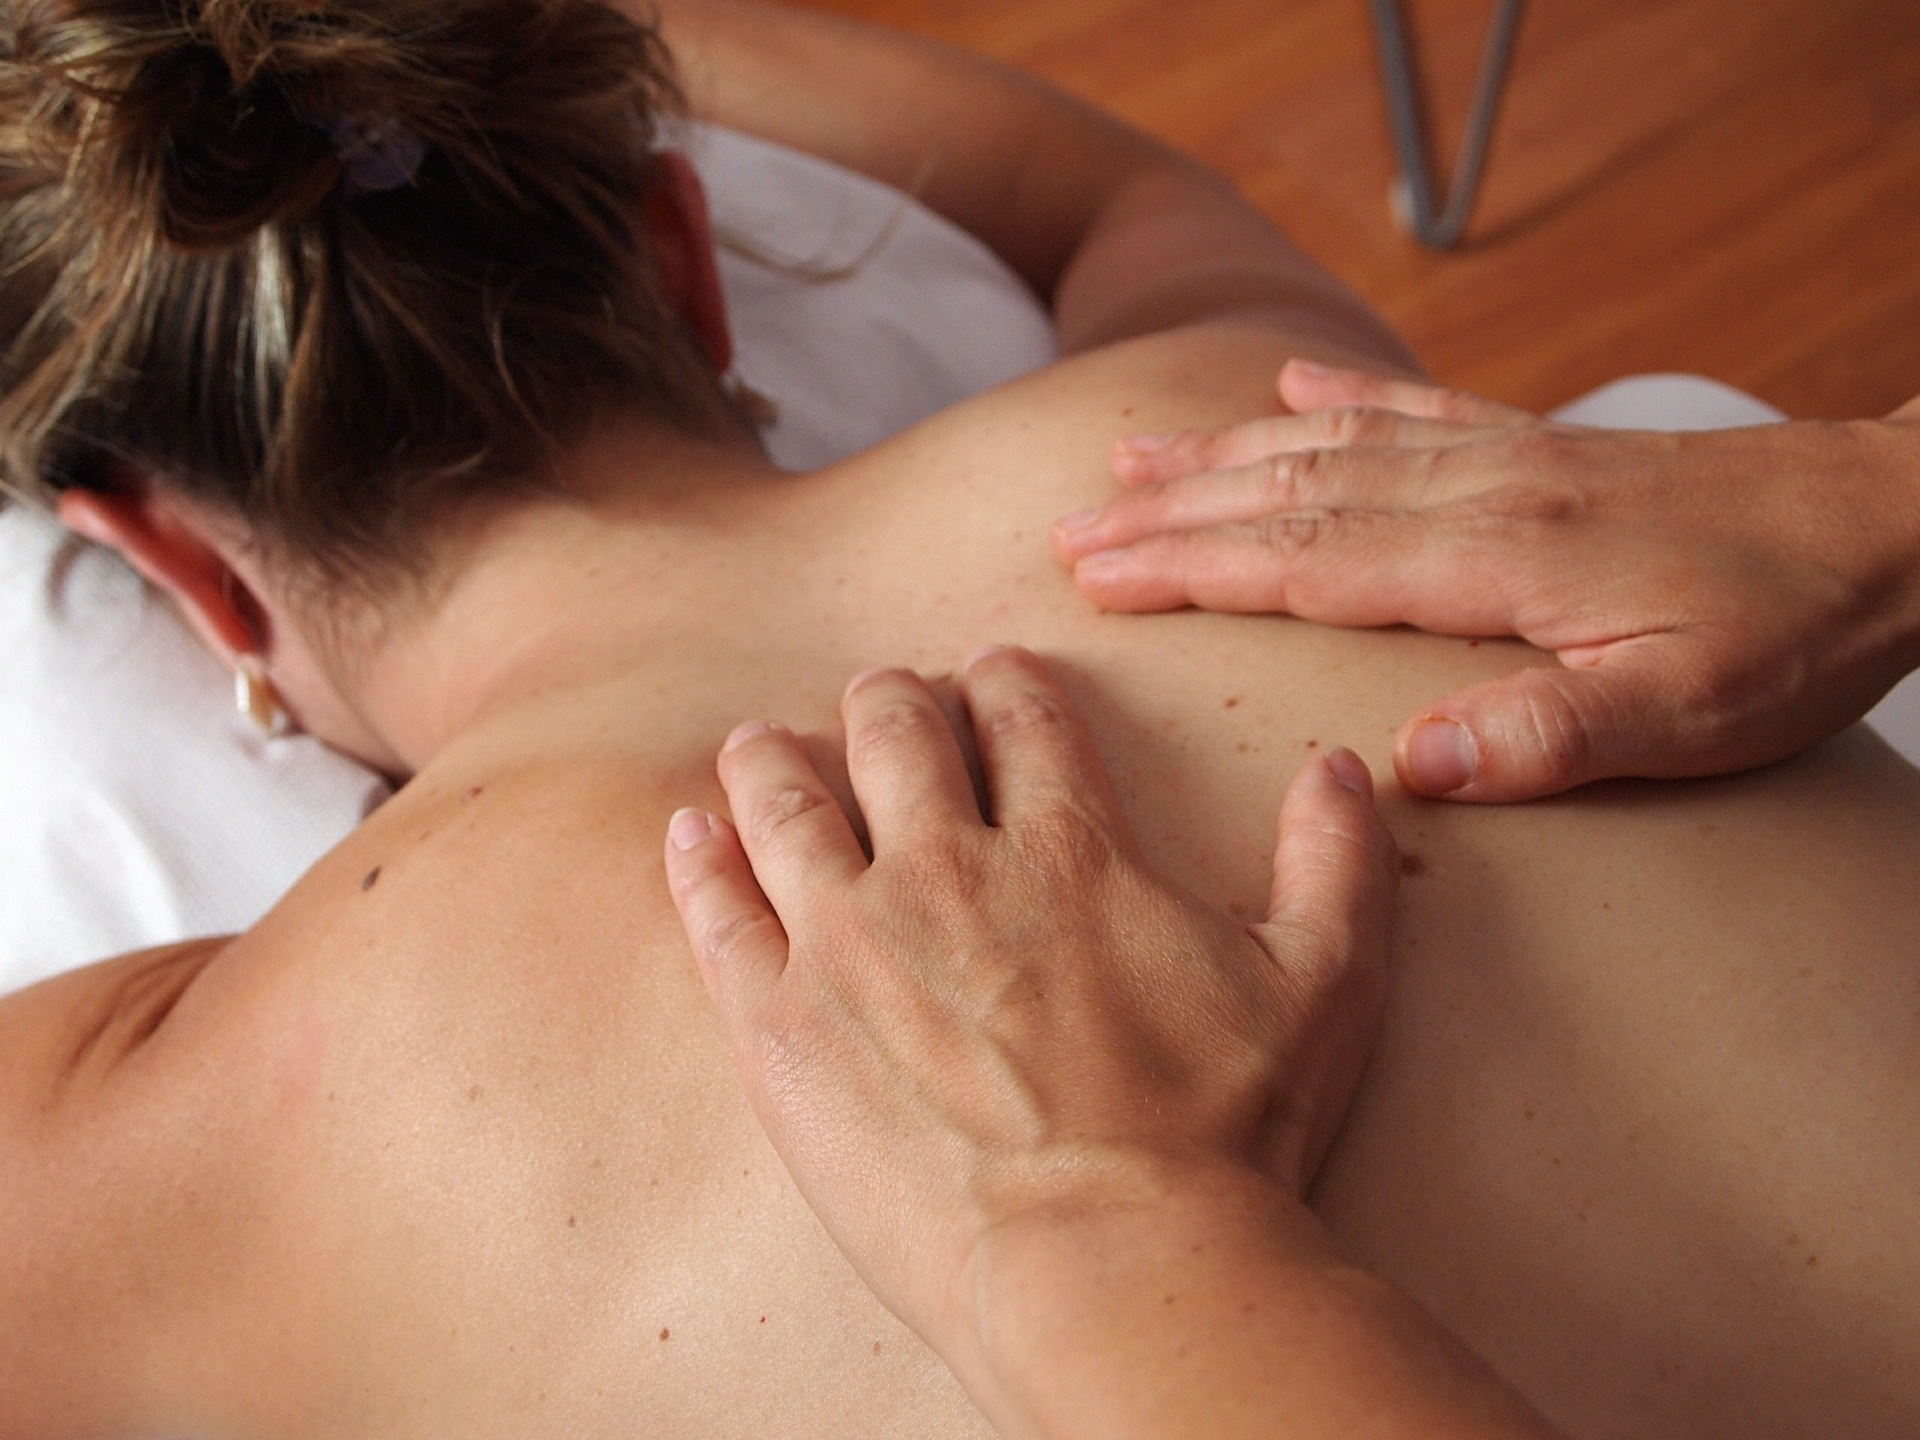 Does Massage Therapy Hurt Sunstone Registered Massage RMT Vaughan Ontario